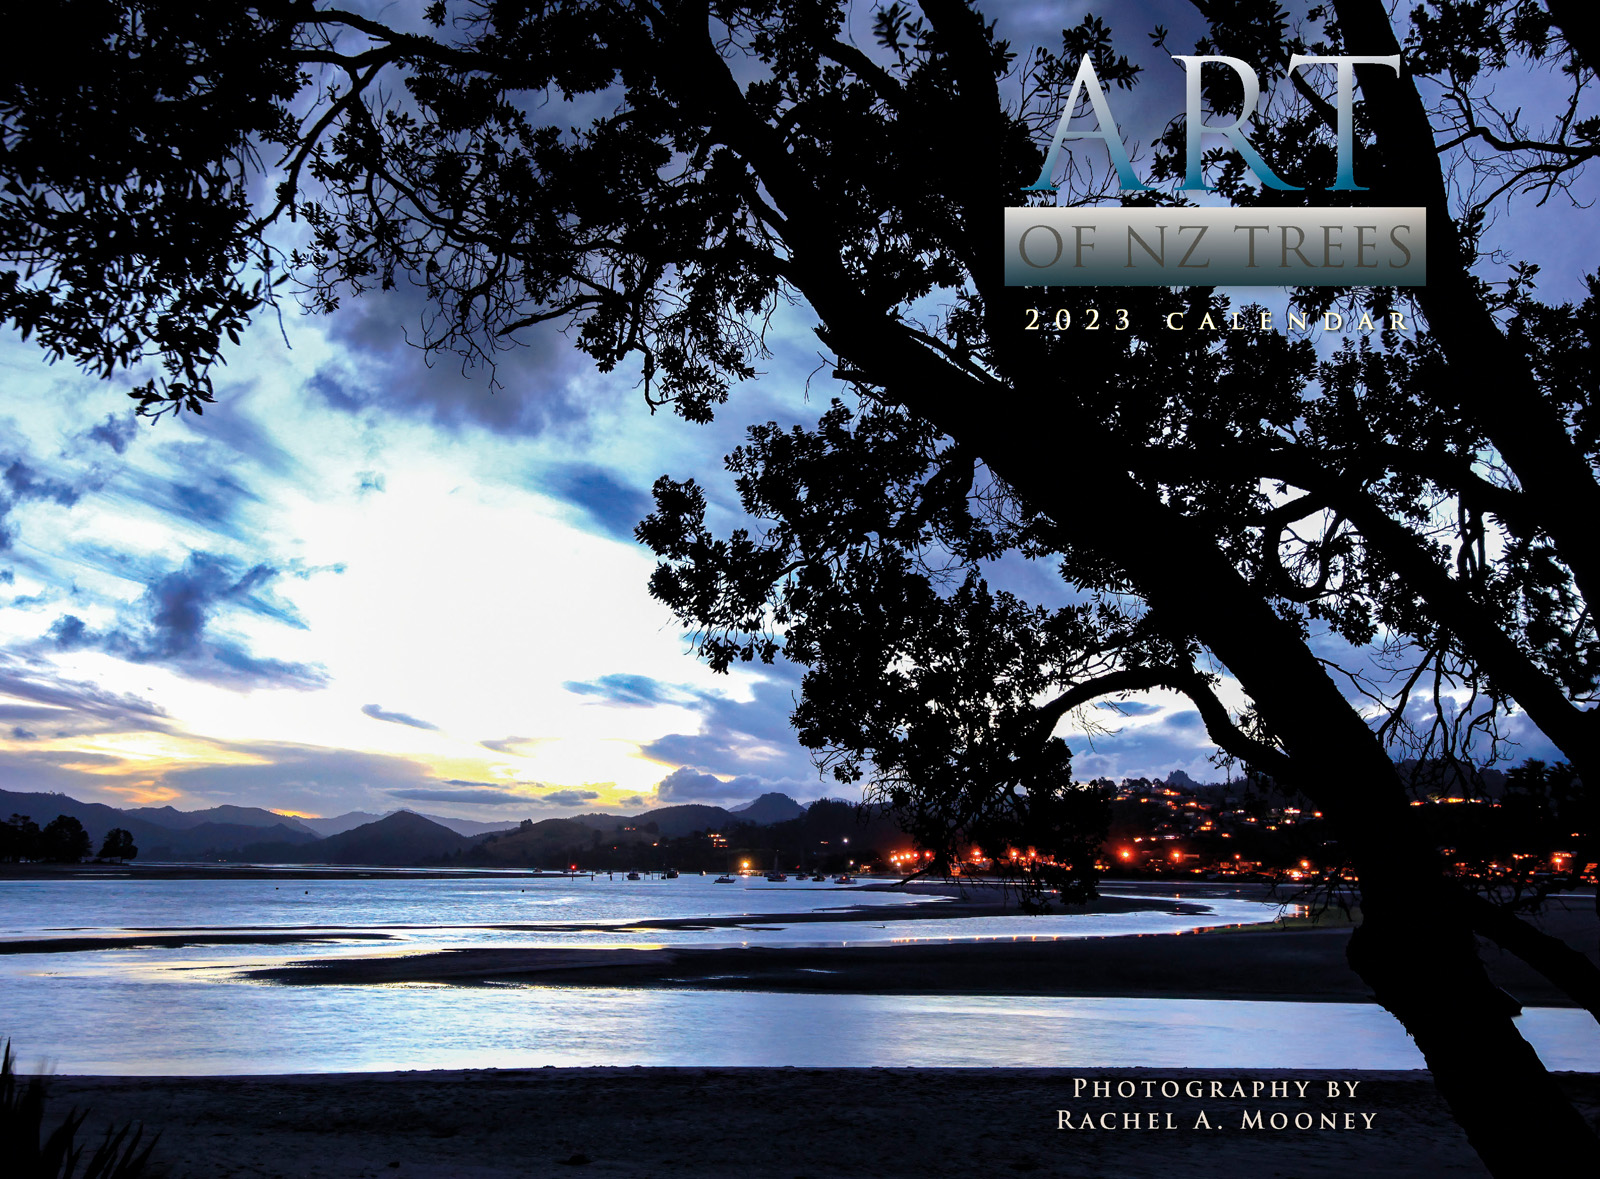 Art of New Zealand Trees 2021